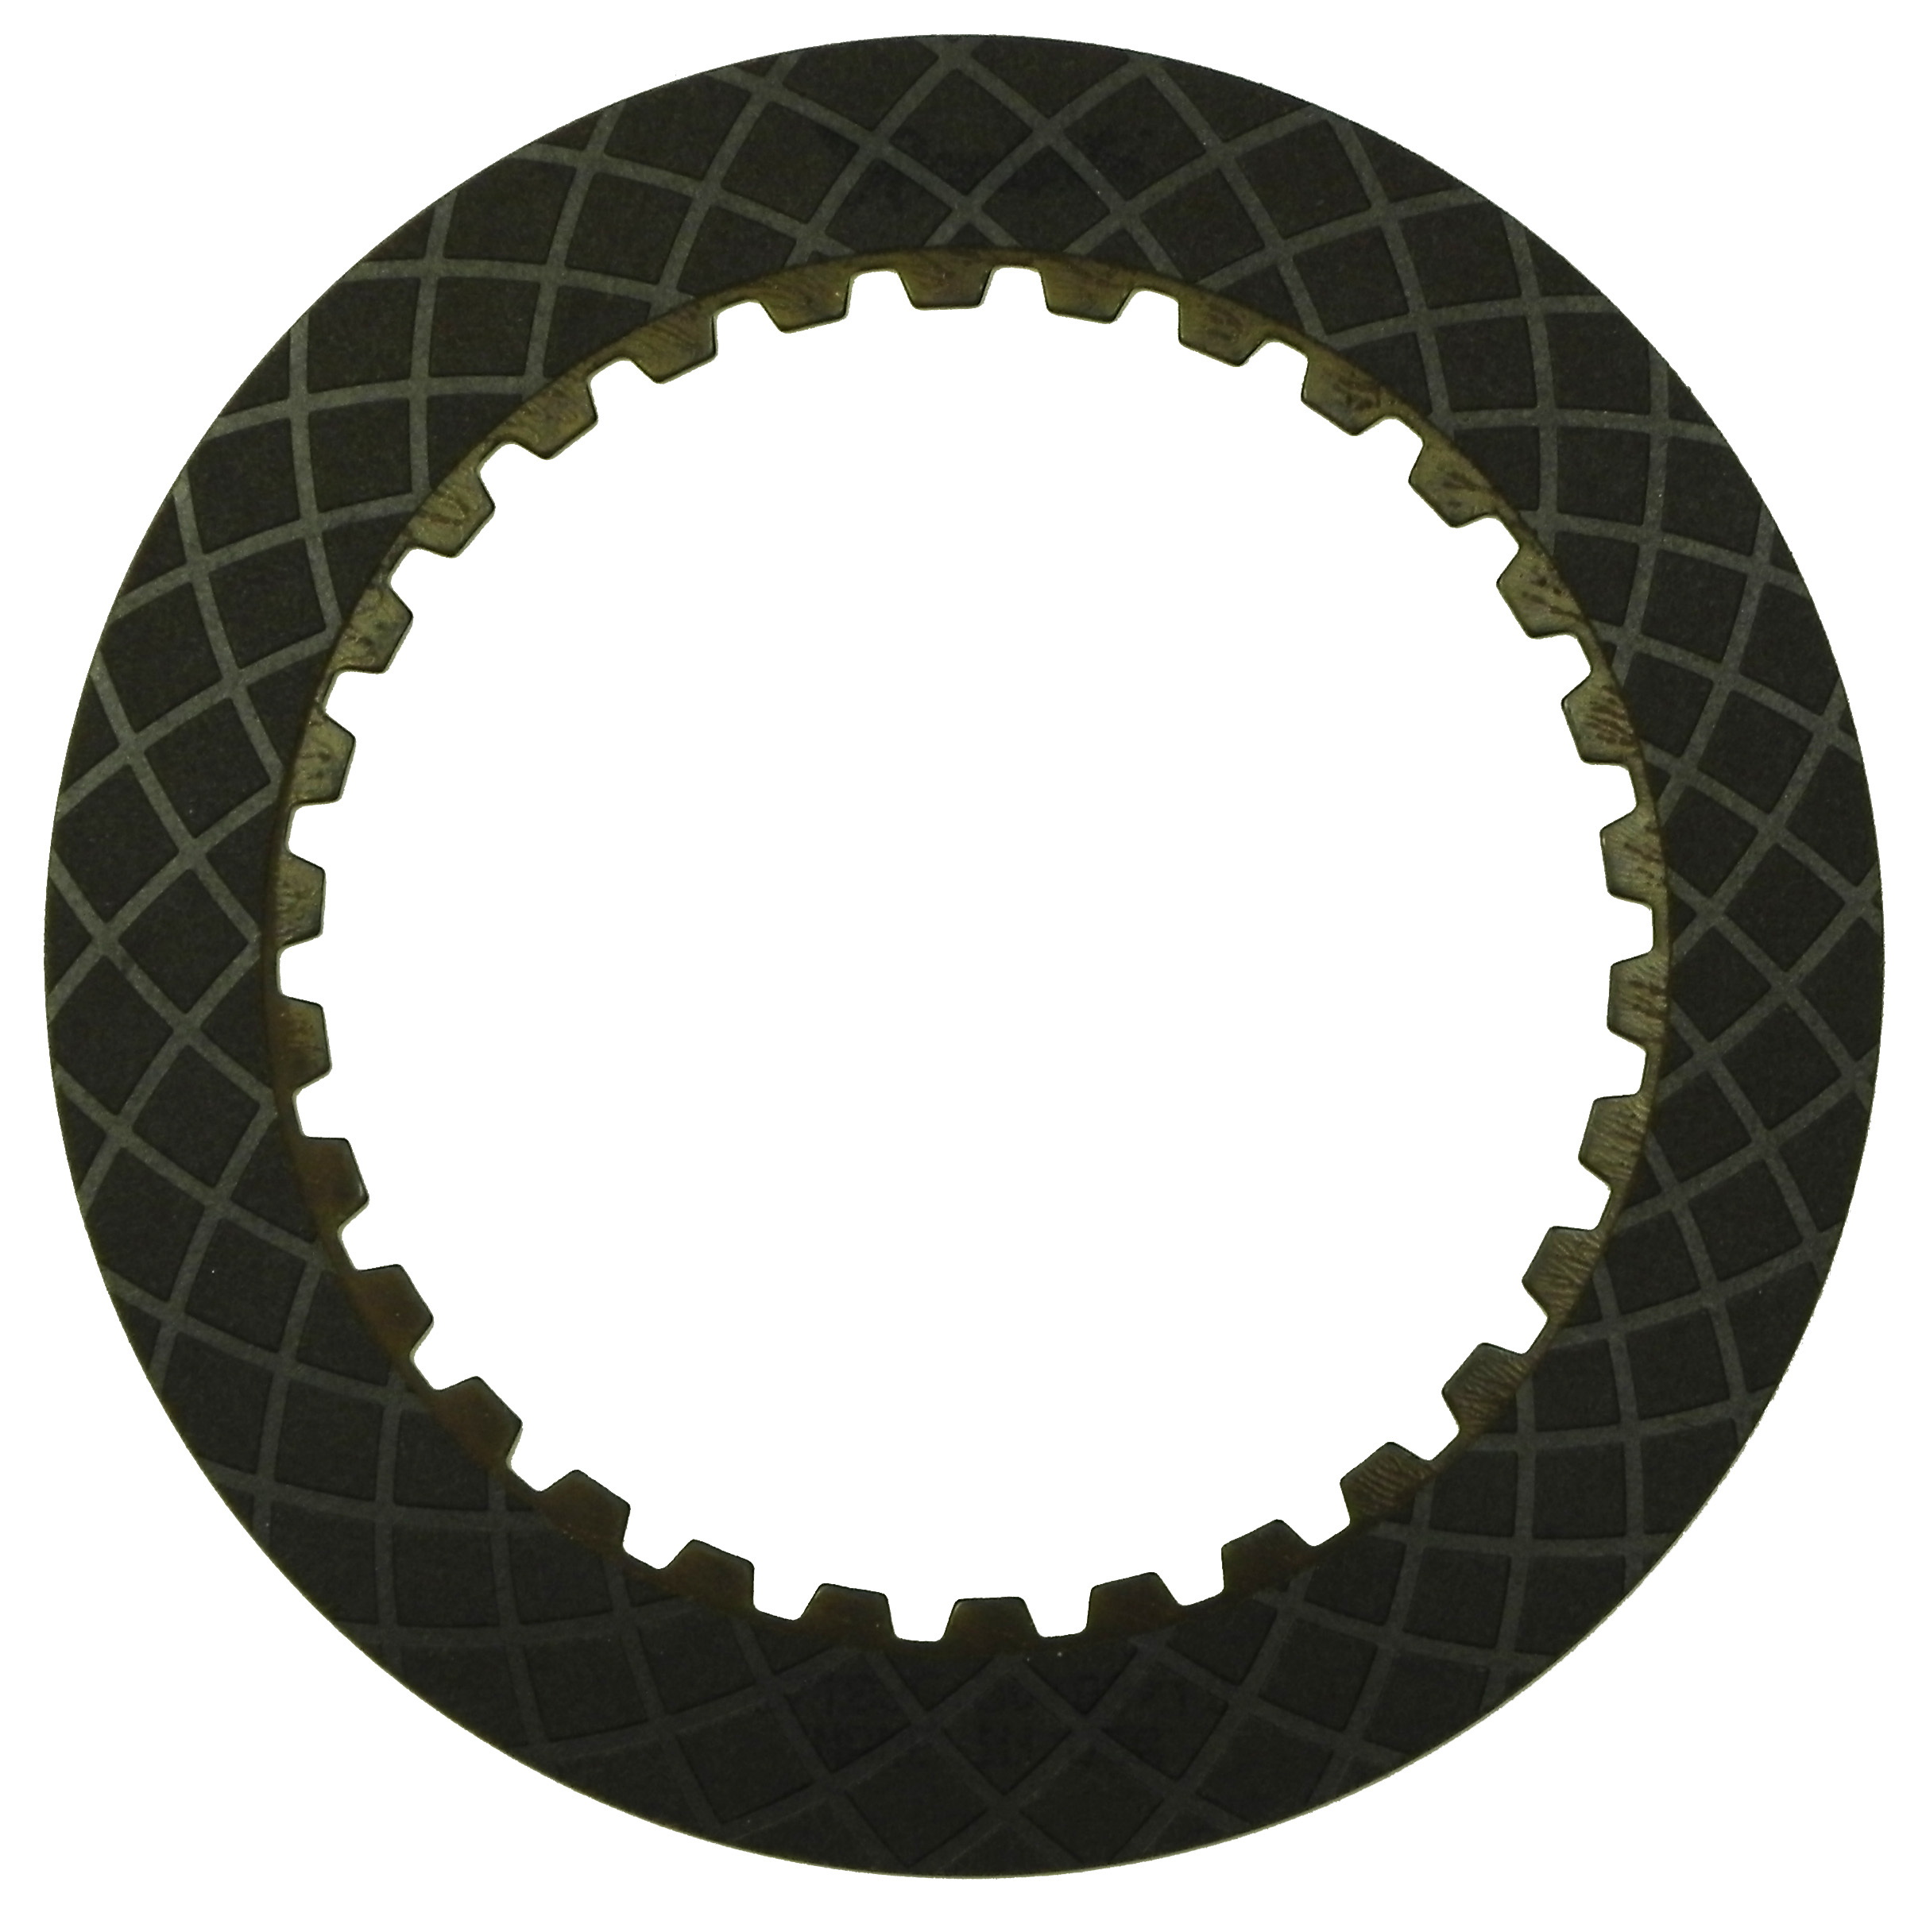 R571835 | 2001-2005 Friction Clutch Plate GPX 2nd GPX